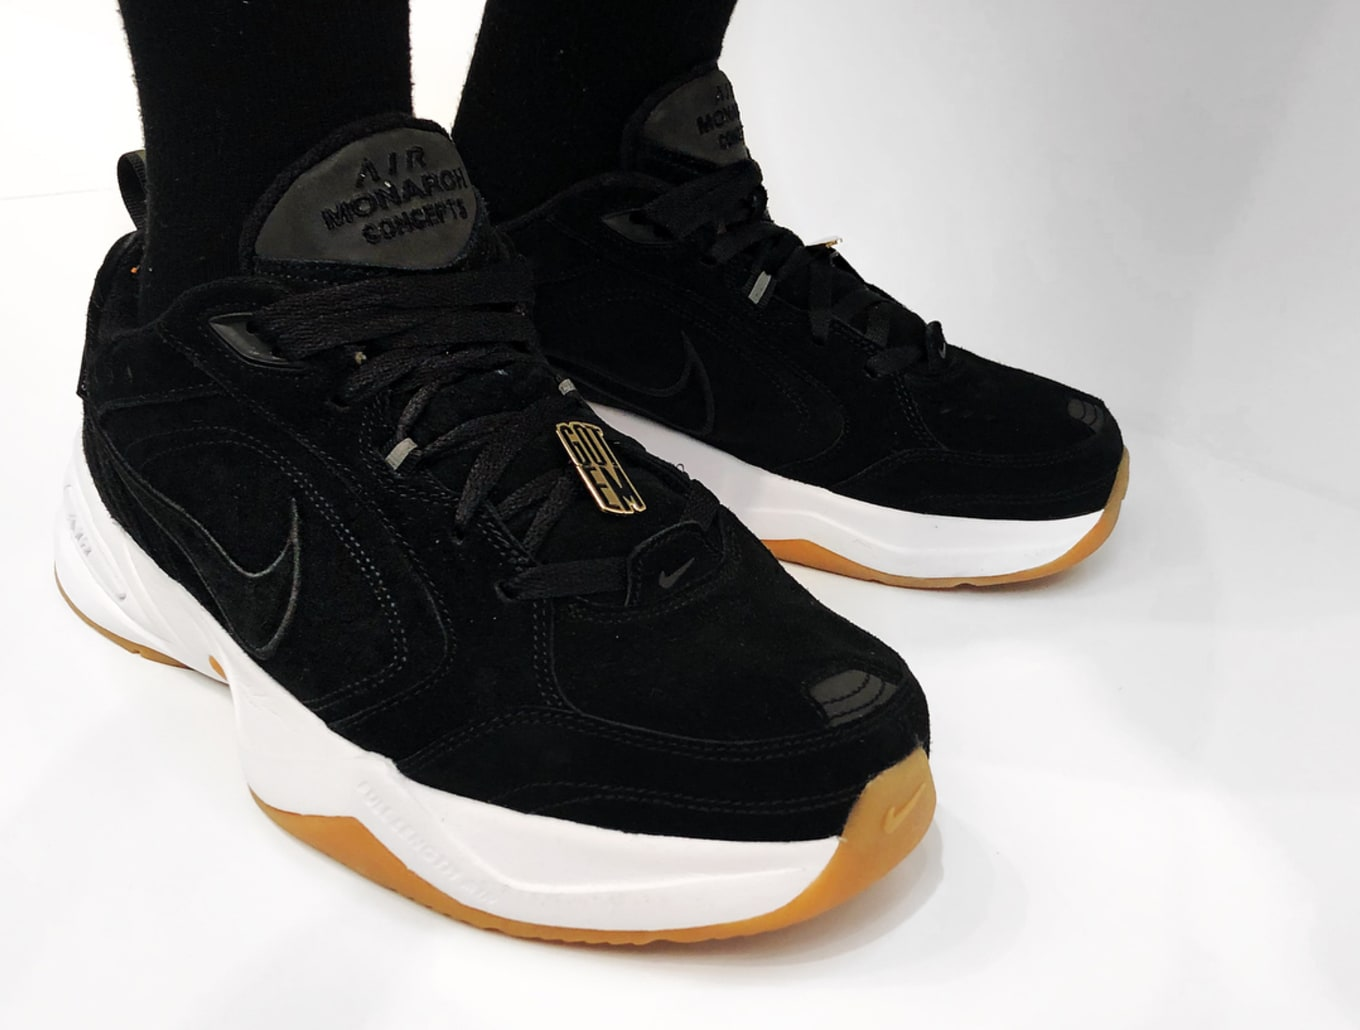 Concepts x Nike Air Monarch Collaboration Revealed. But will it release  e575b8af9